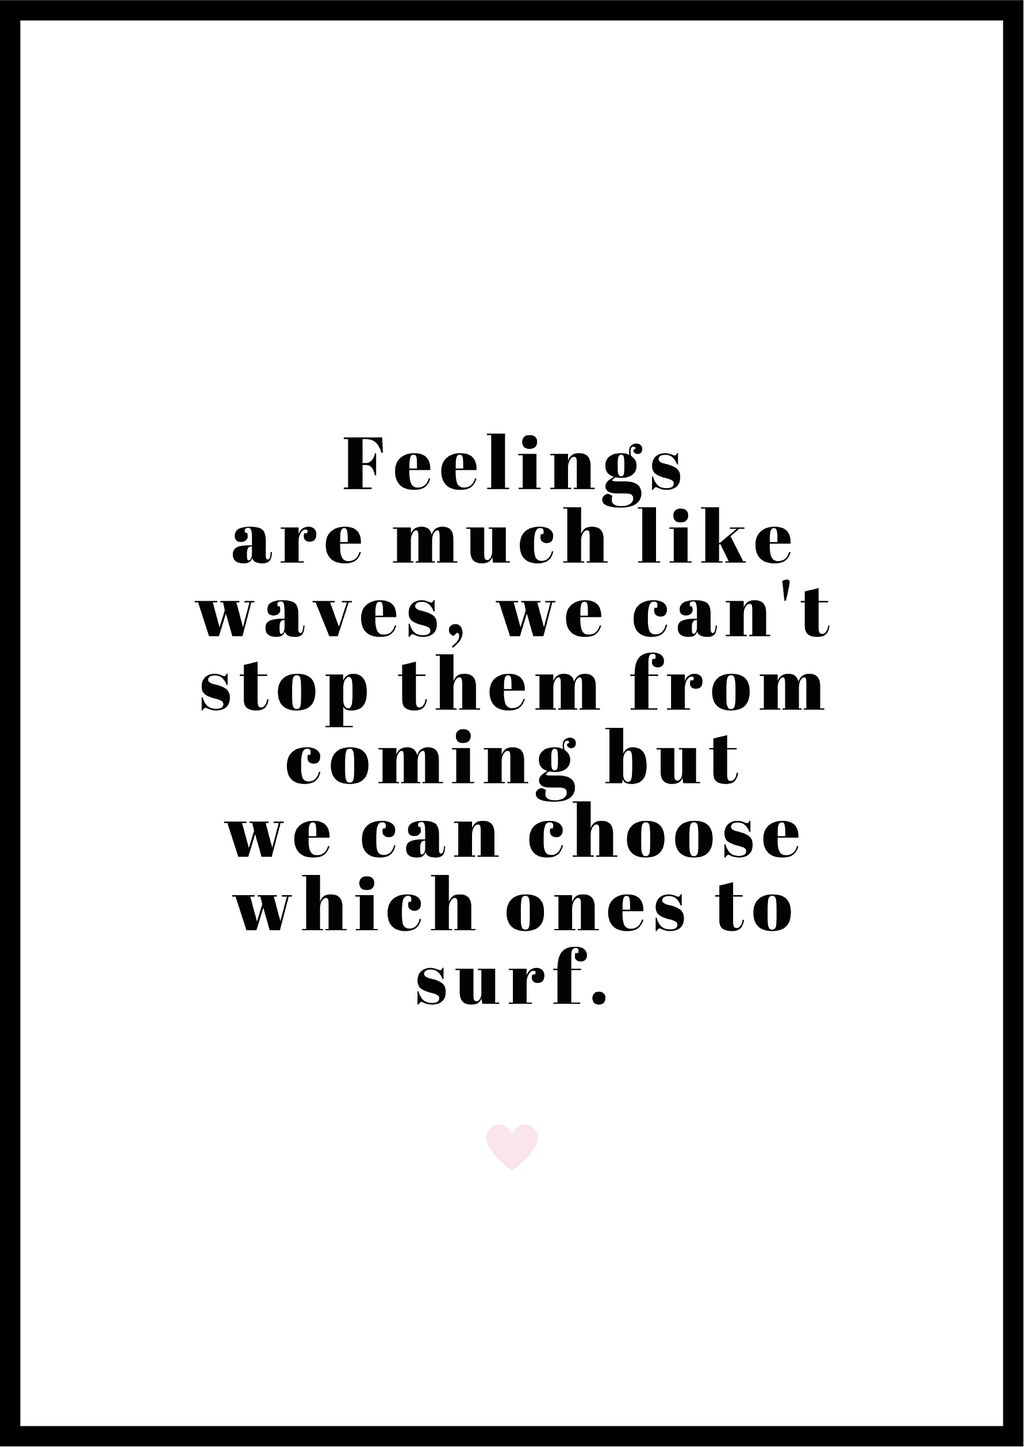 Feelings are like waves